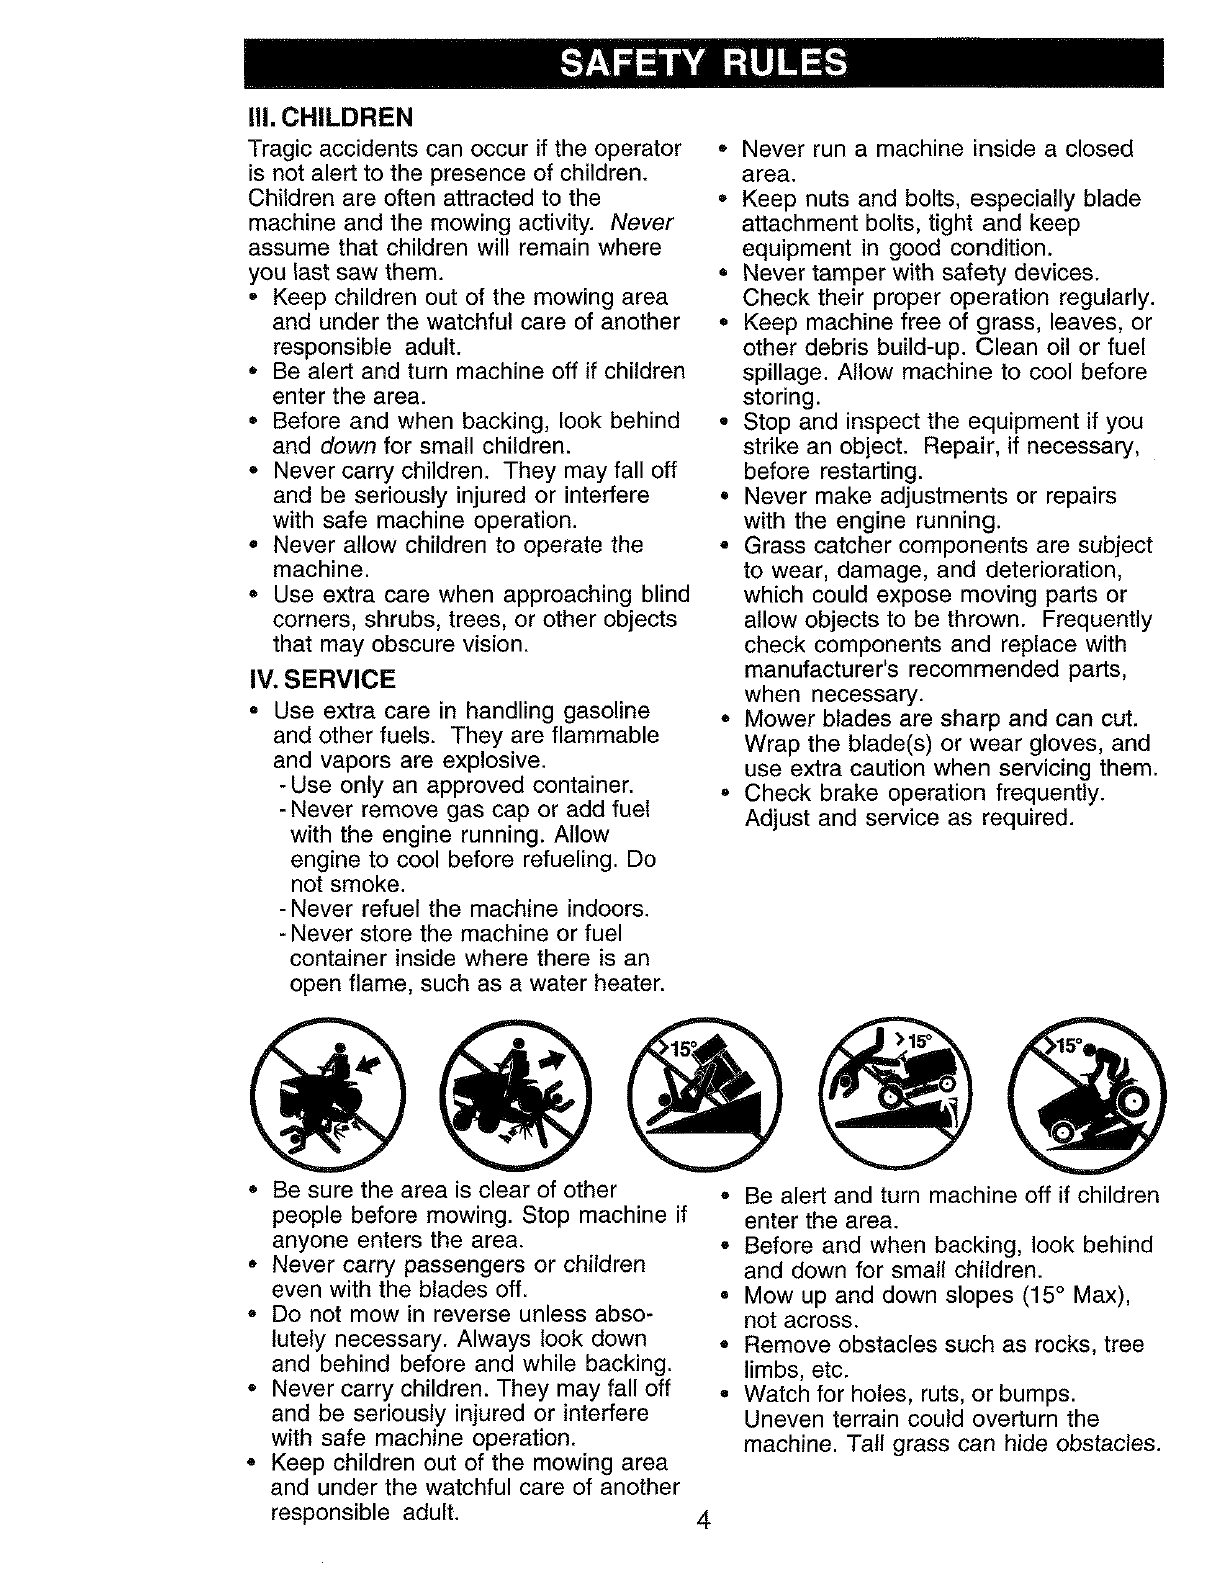 Page 4 of Craftsman Lawn Mower 917.273062 User Guide